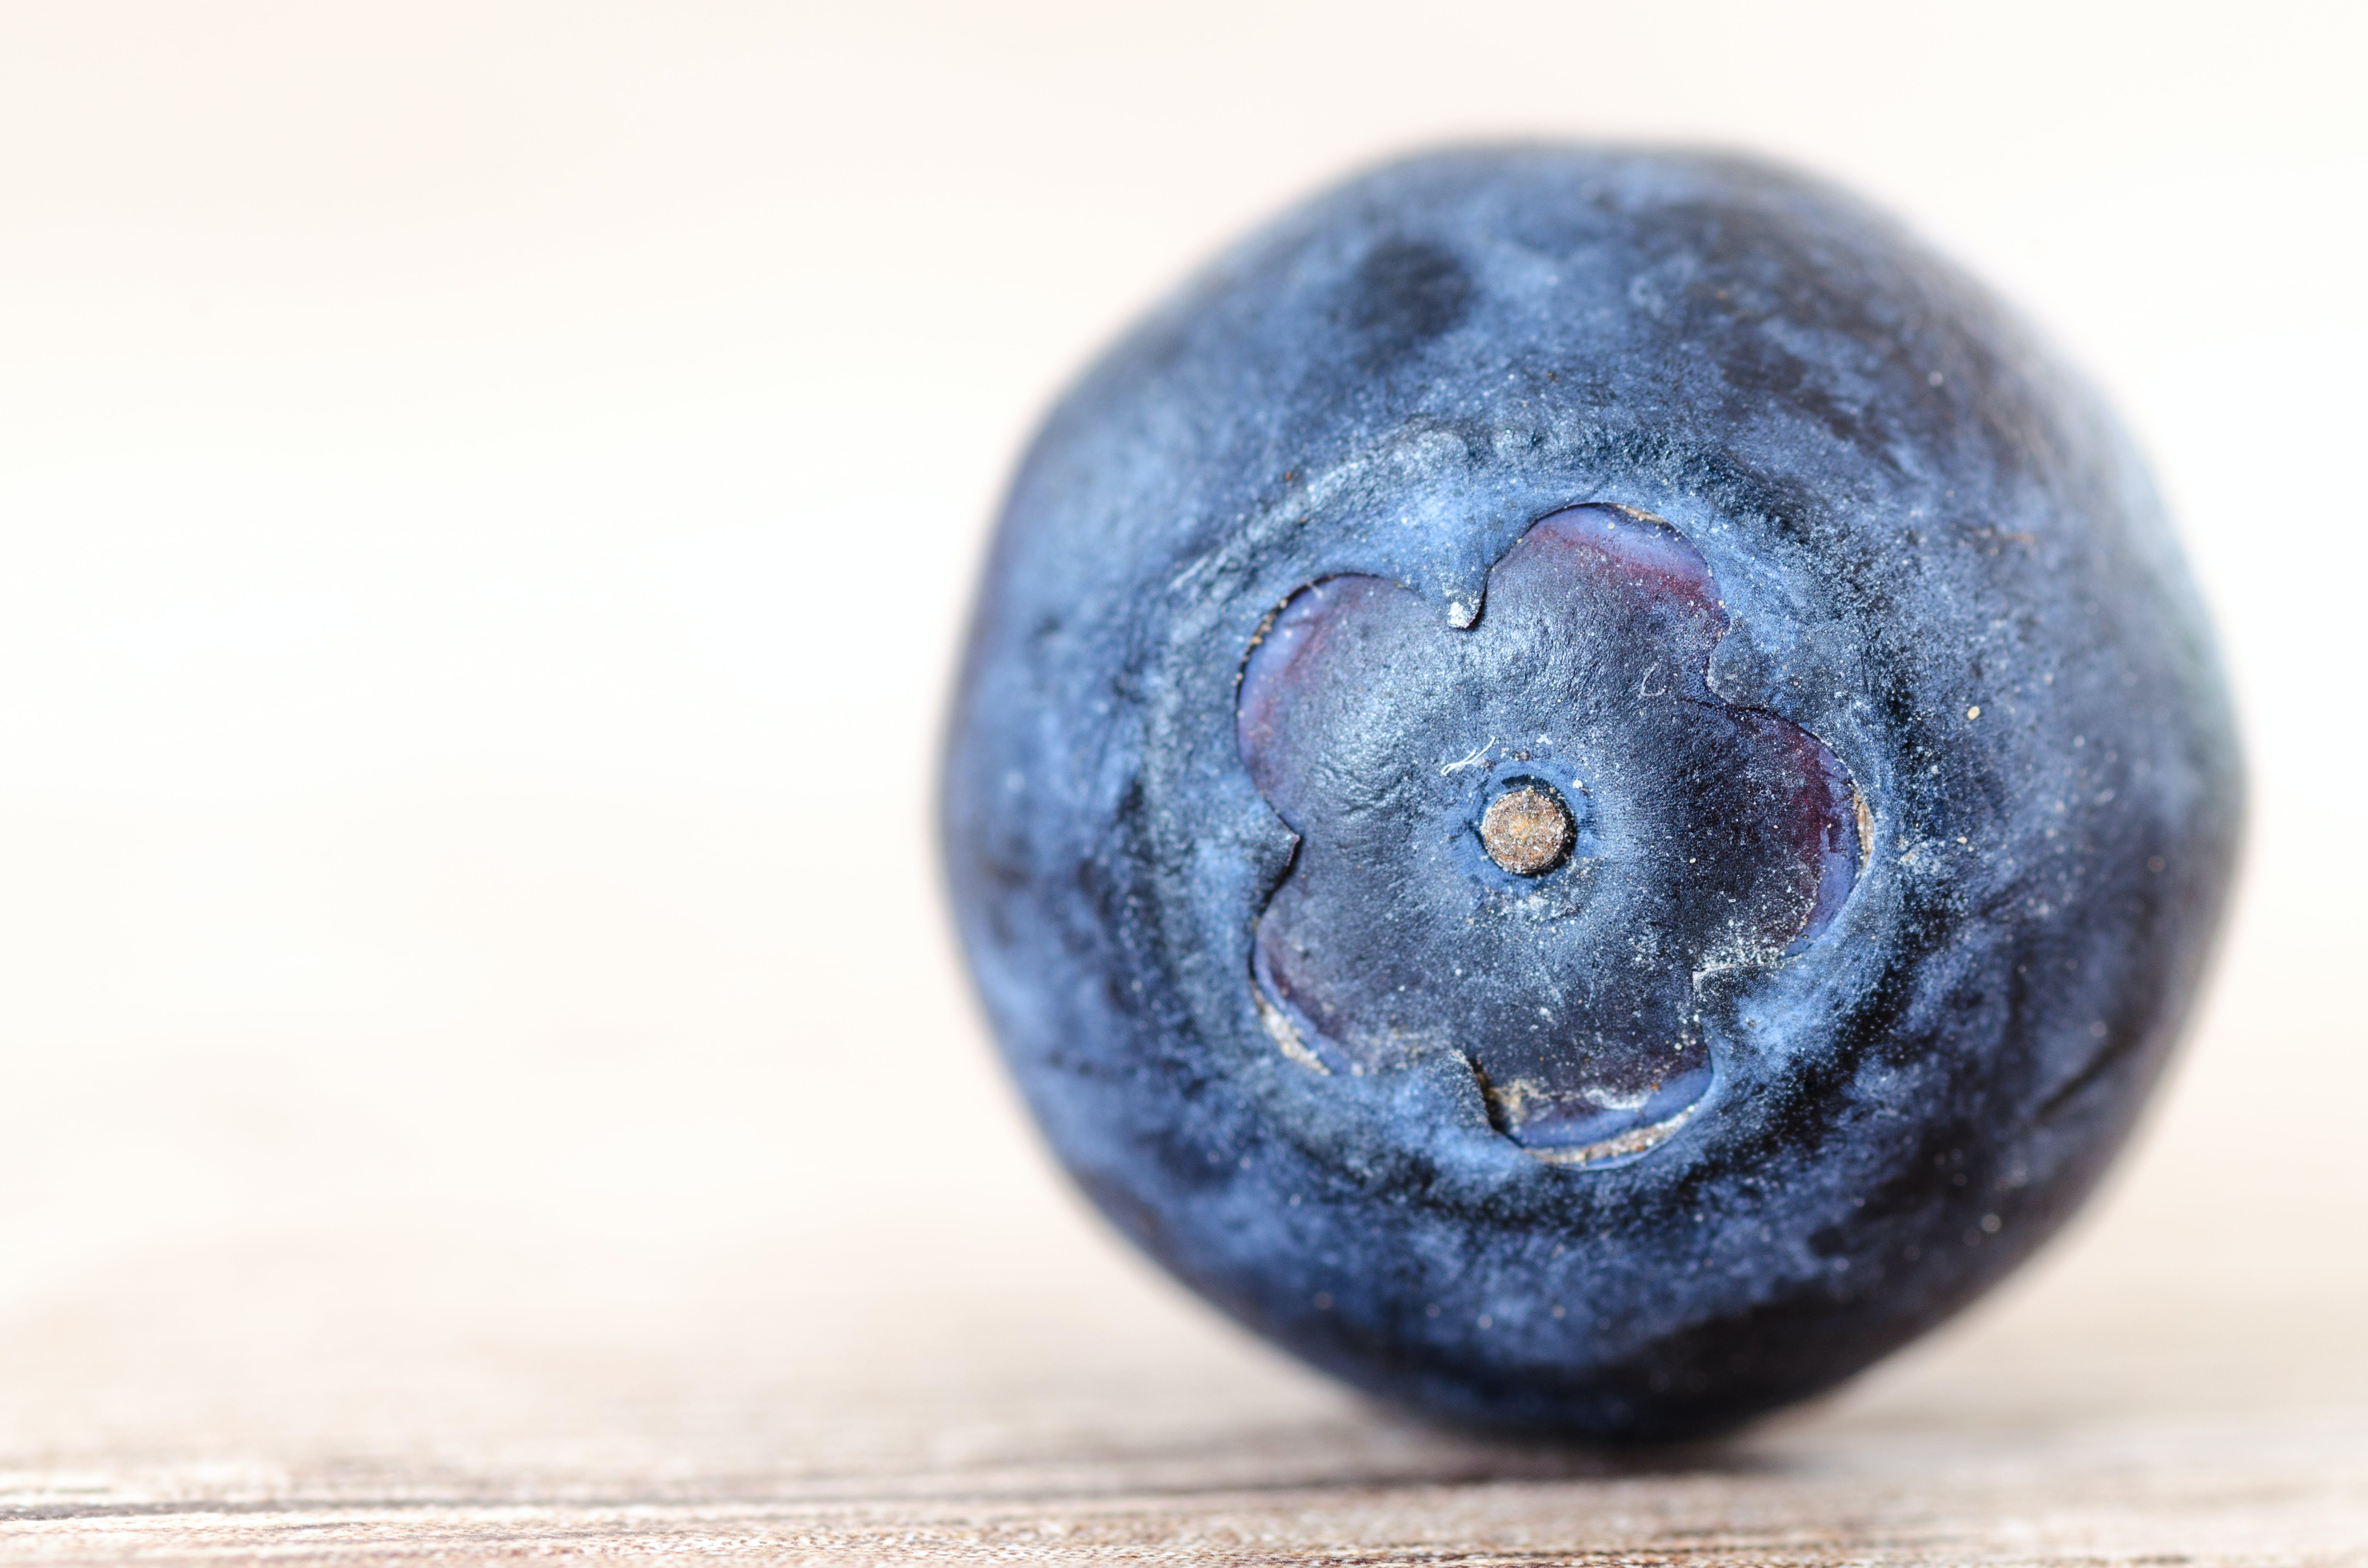 Blueberry Placed on Brown Surface